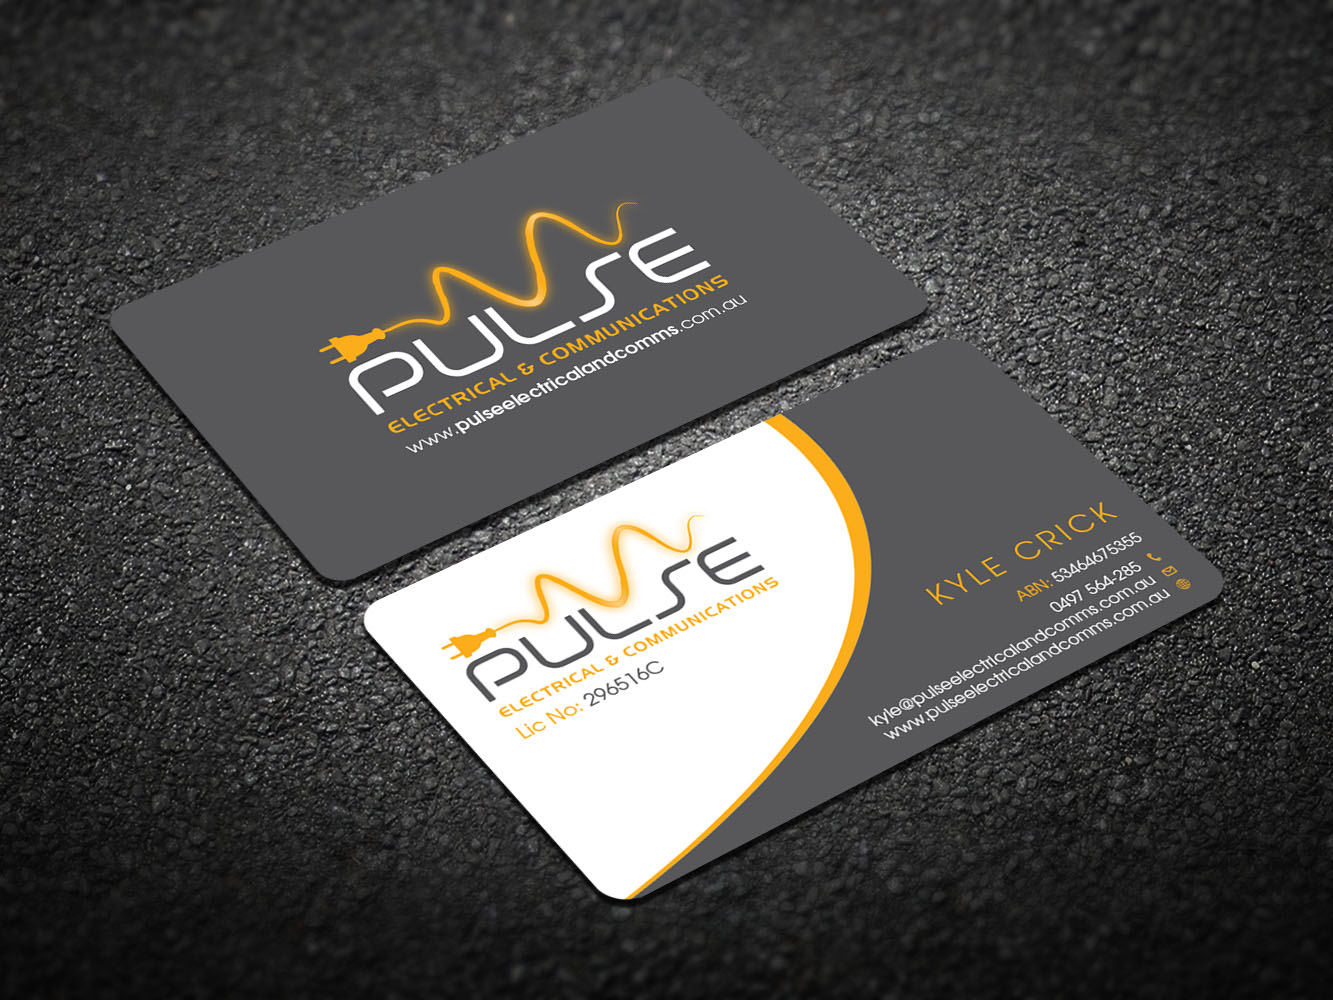 business card design by design xeneration for pulse electrical and communications design - Electrician Business Cards